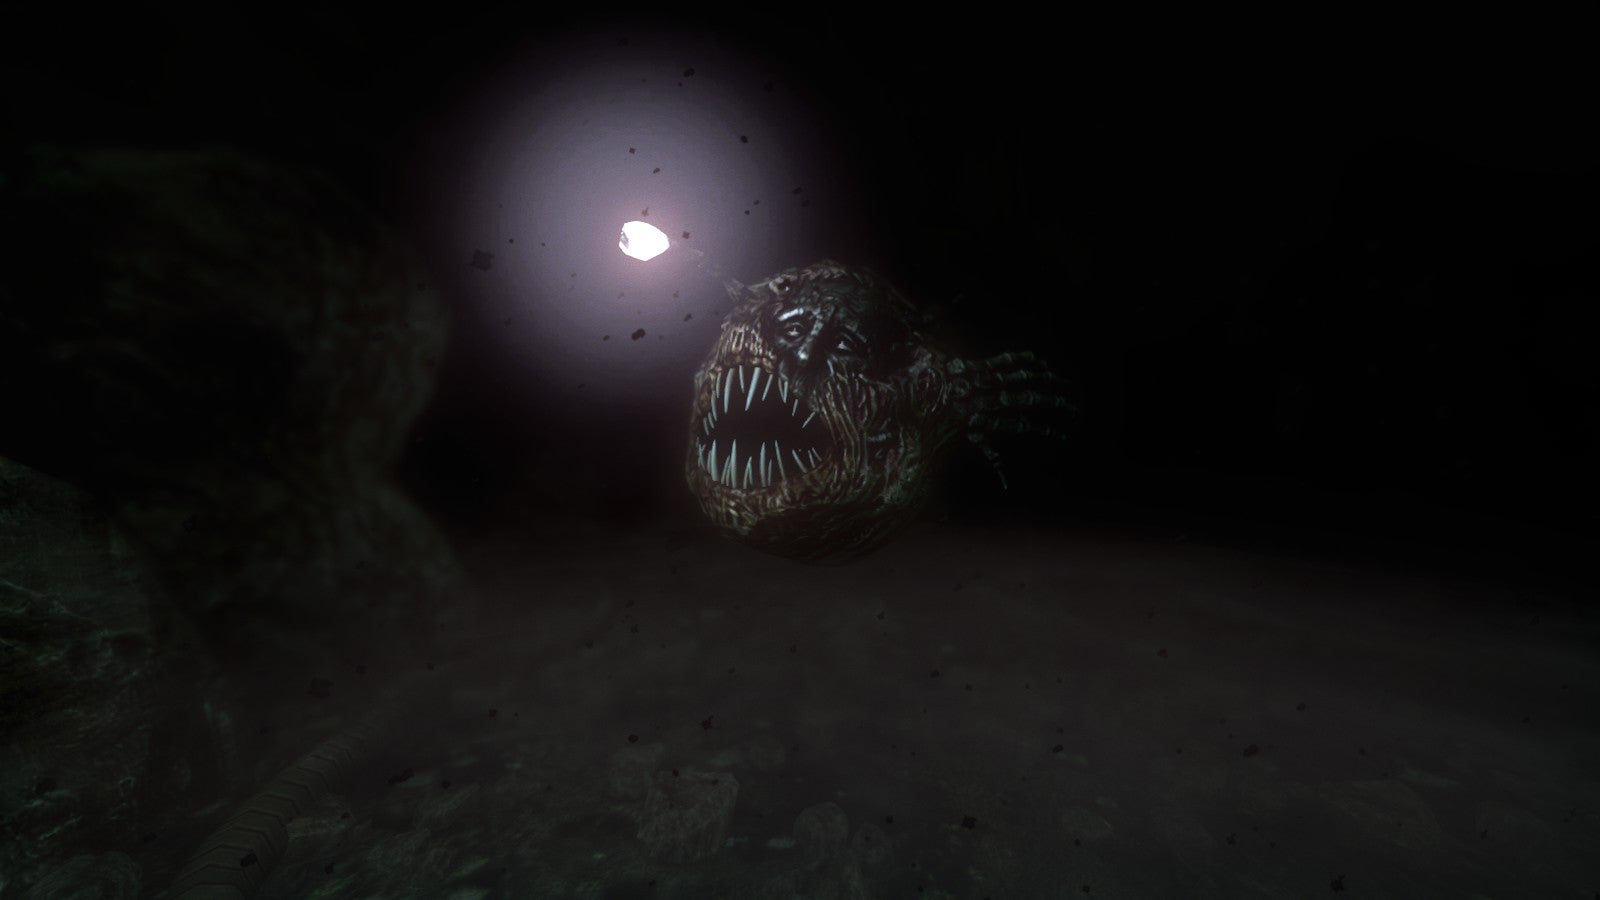 SOMA Mod Stops Monsters From Attacking, Improves The Game